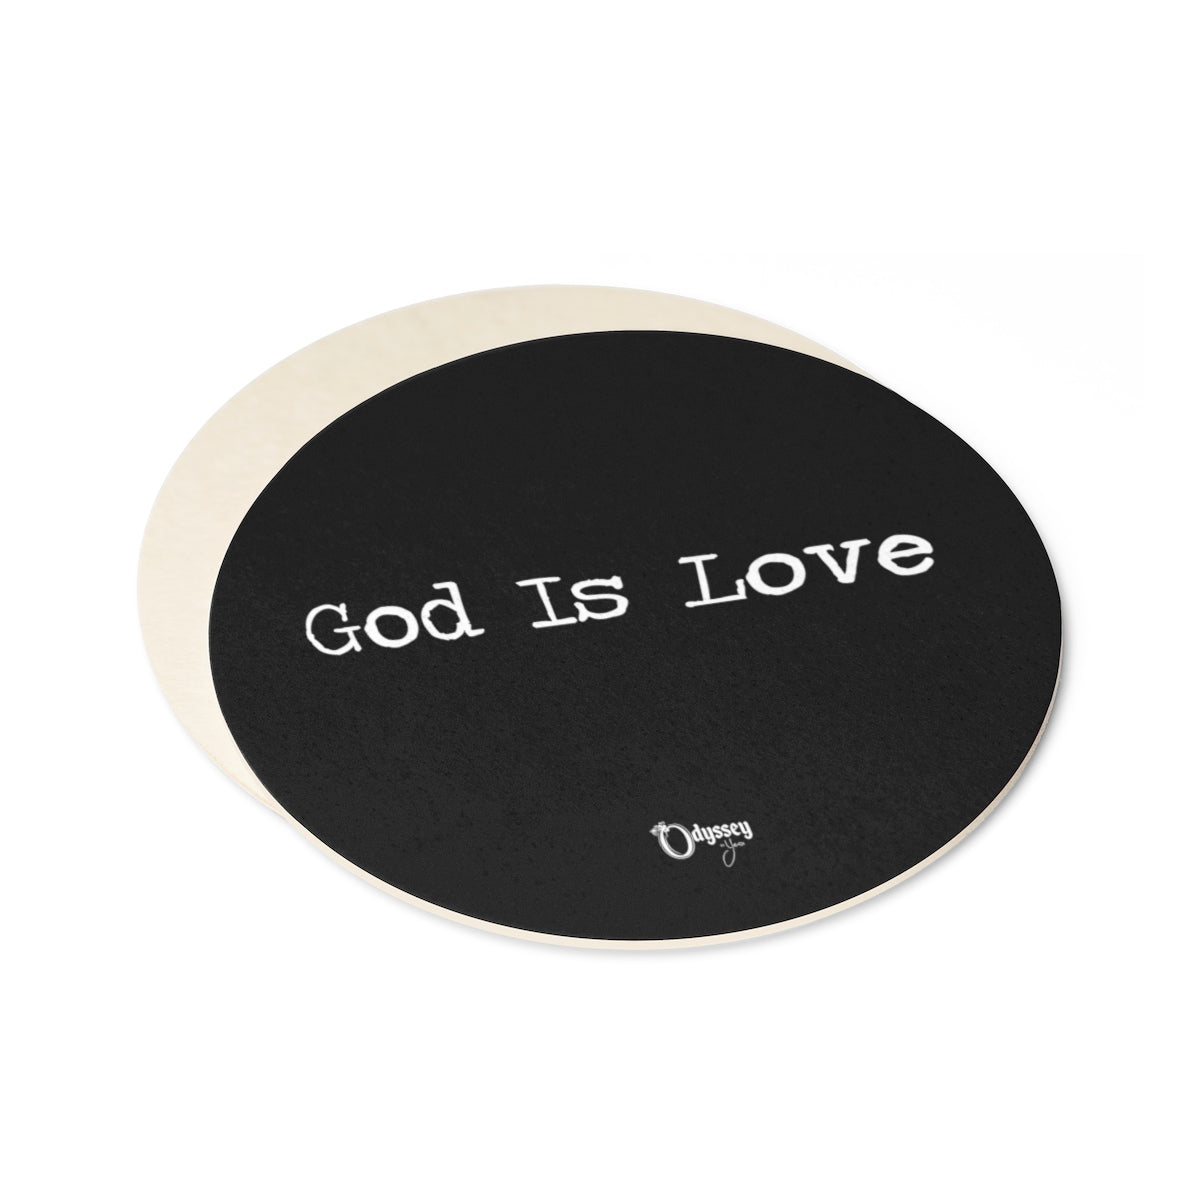 Odyssey God Is Love Paper Coaster Set - 6pcs - Home Decor - Odyssey By Yendi